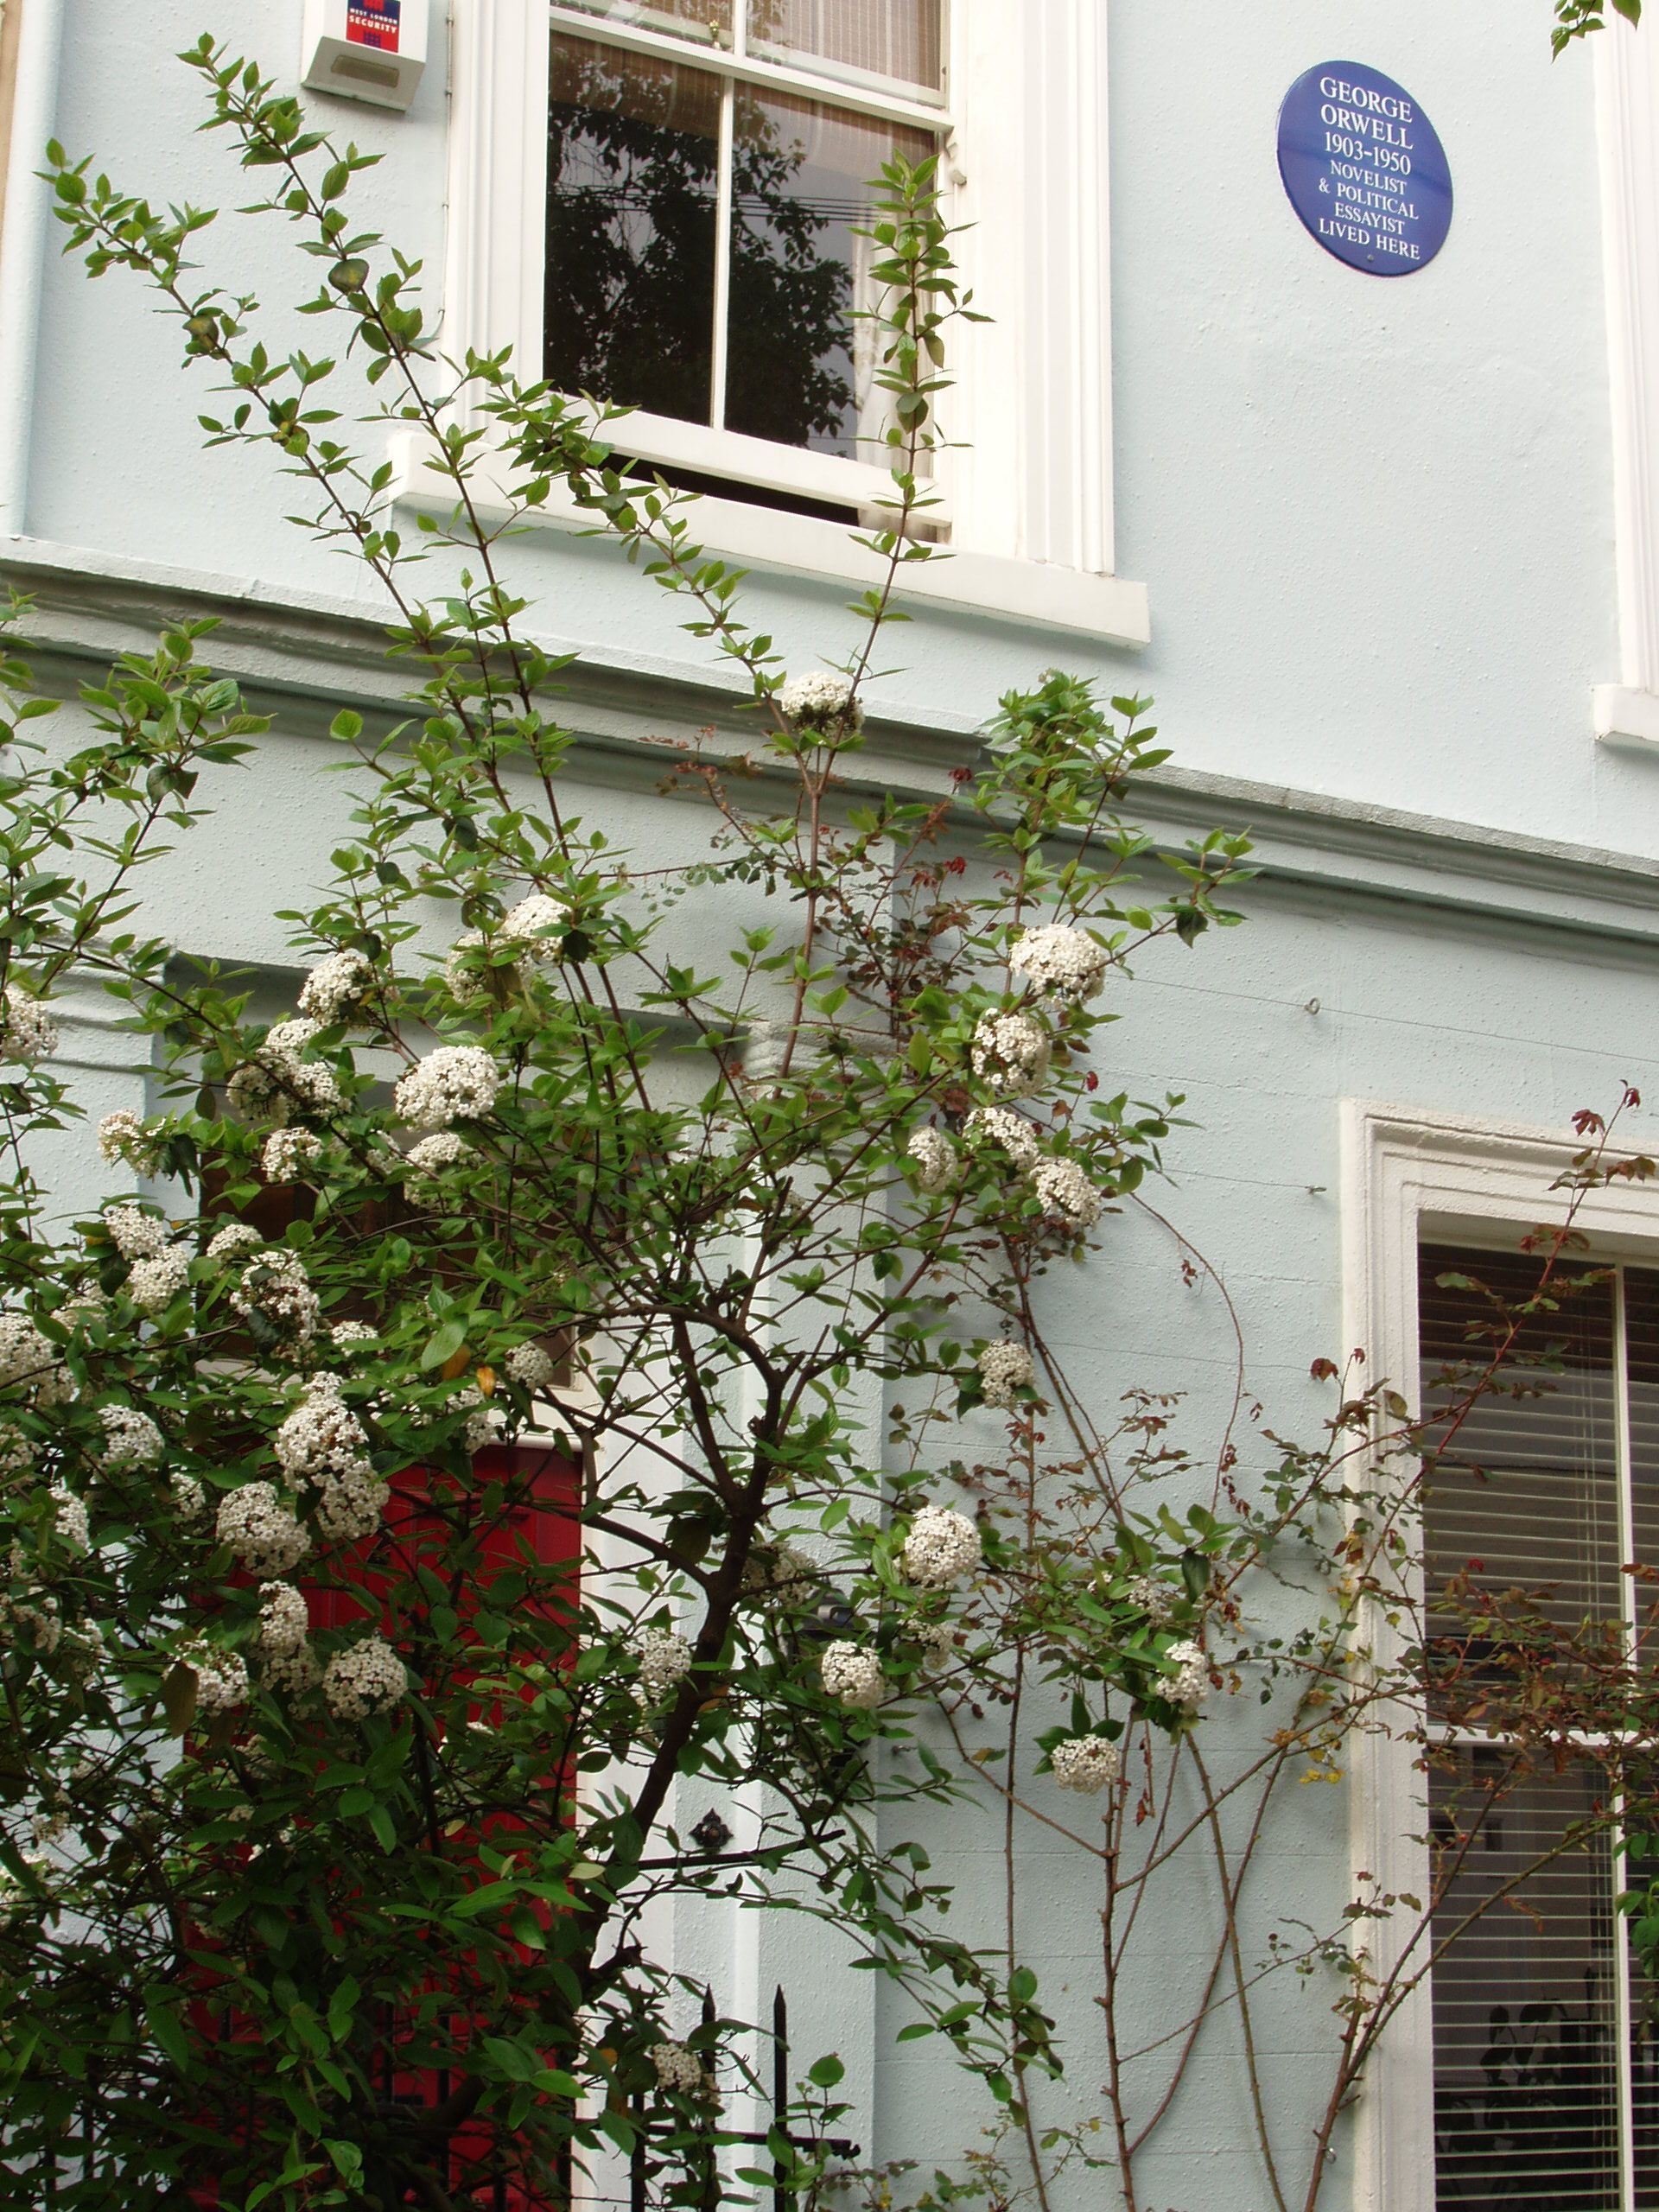 22 Portobello Road was the first London home where George Orwell lodged with Mrs Craig during